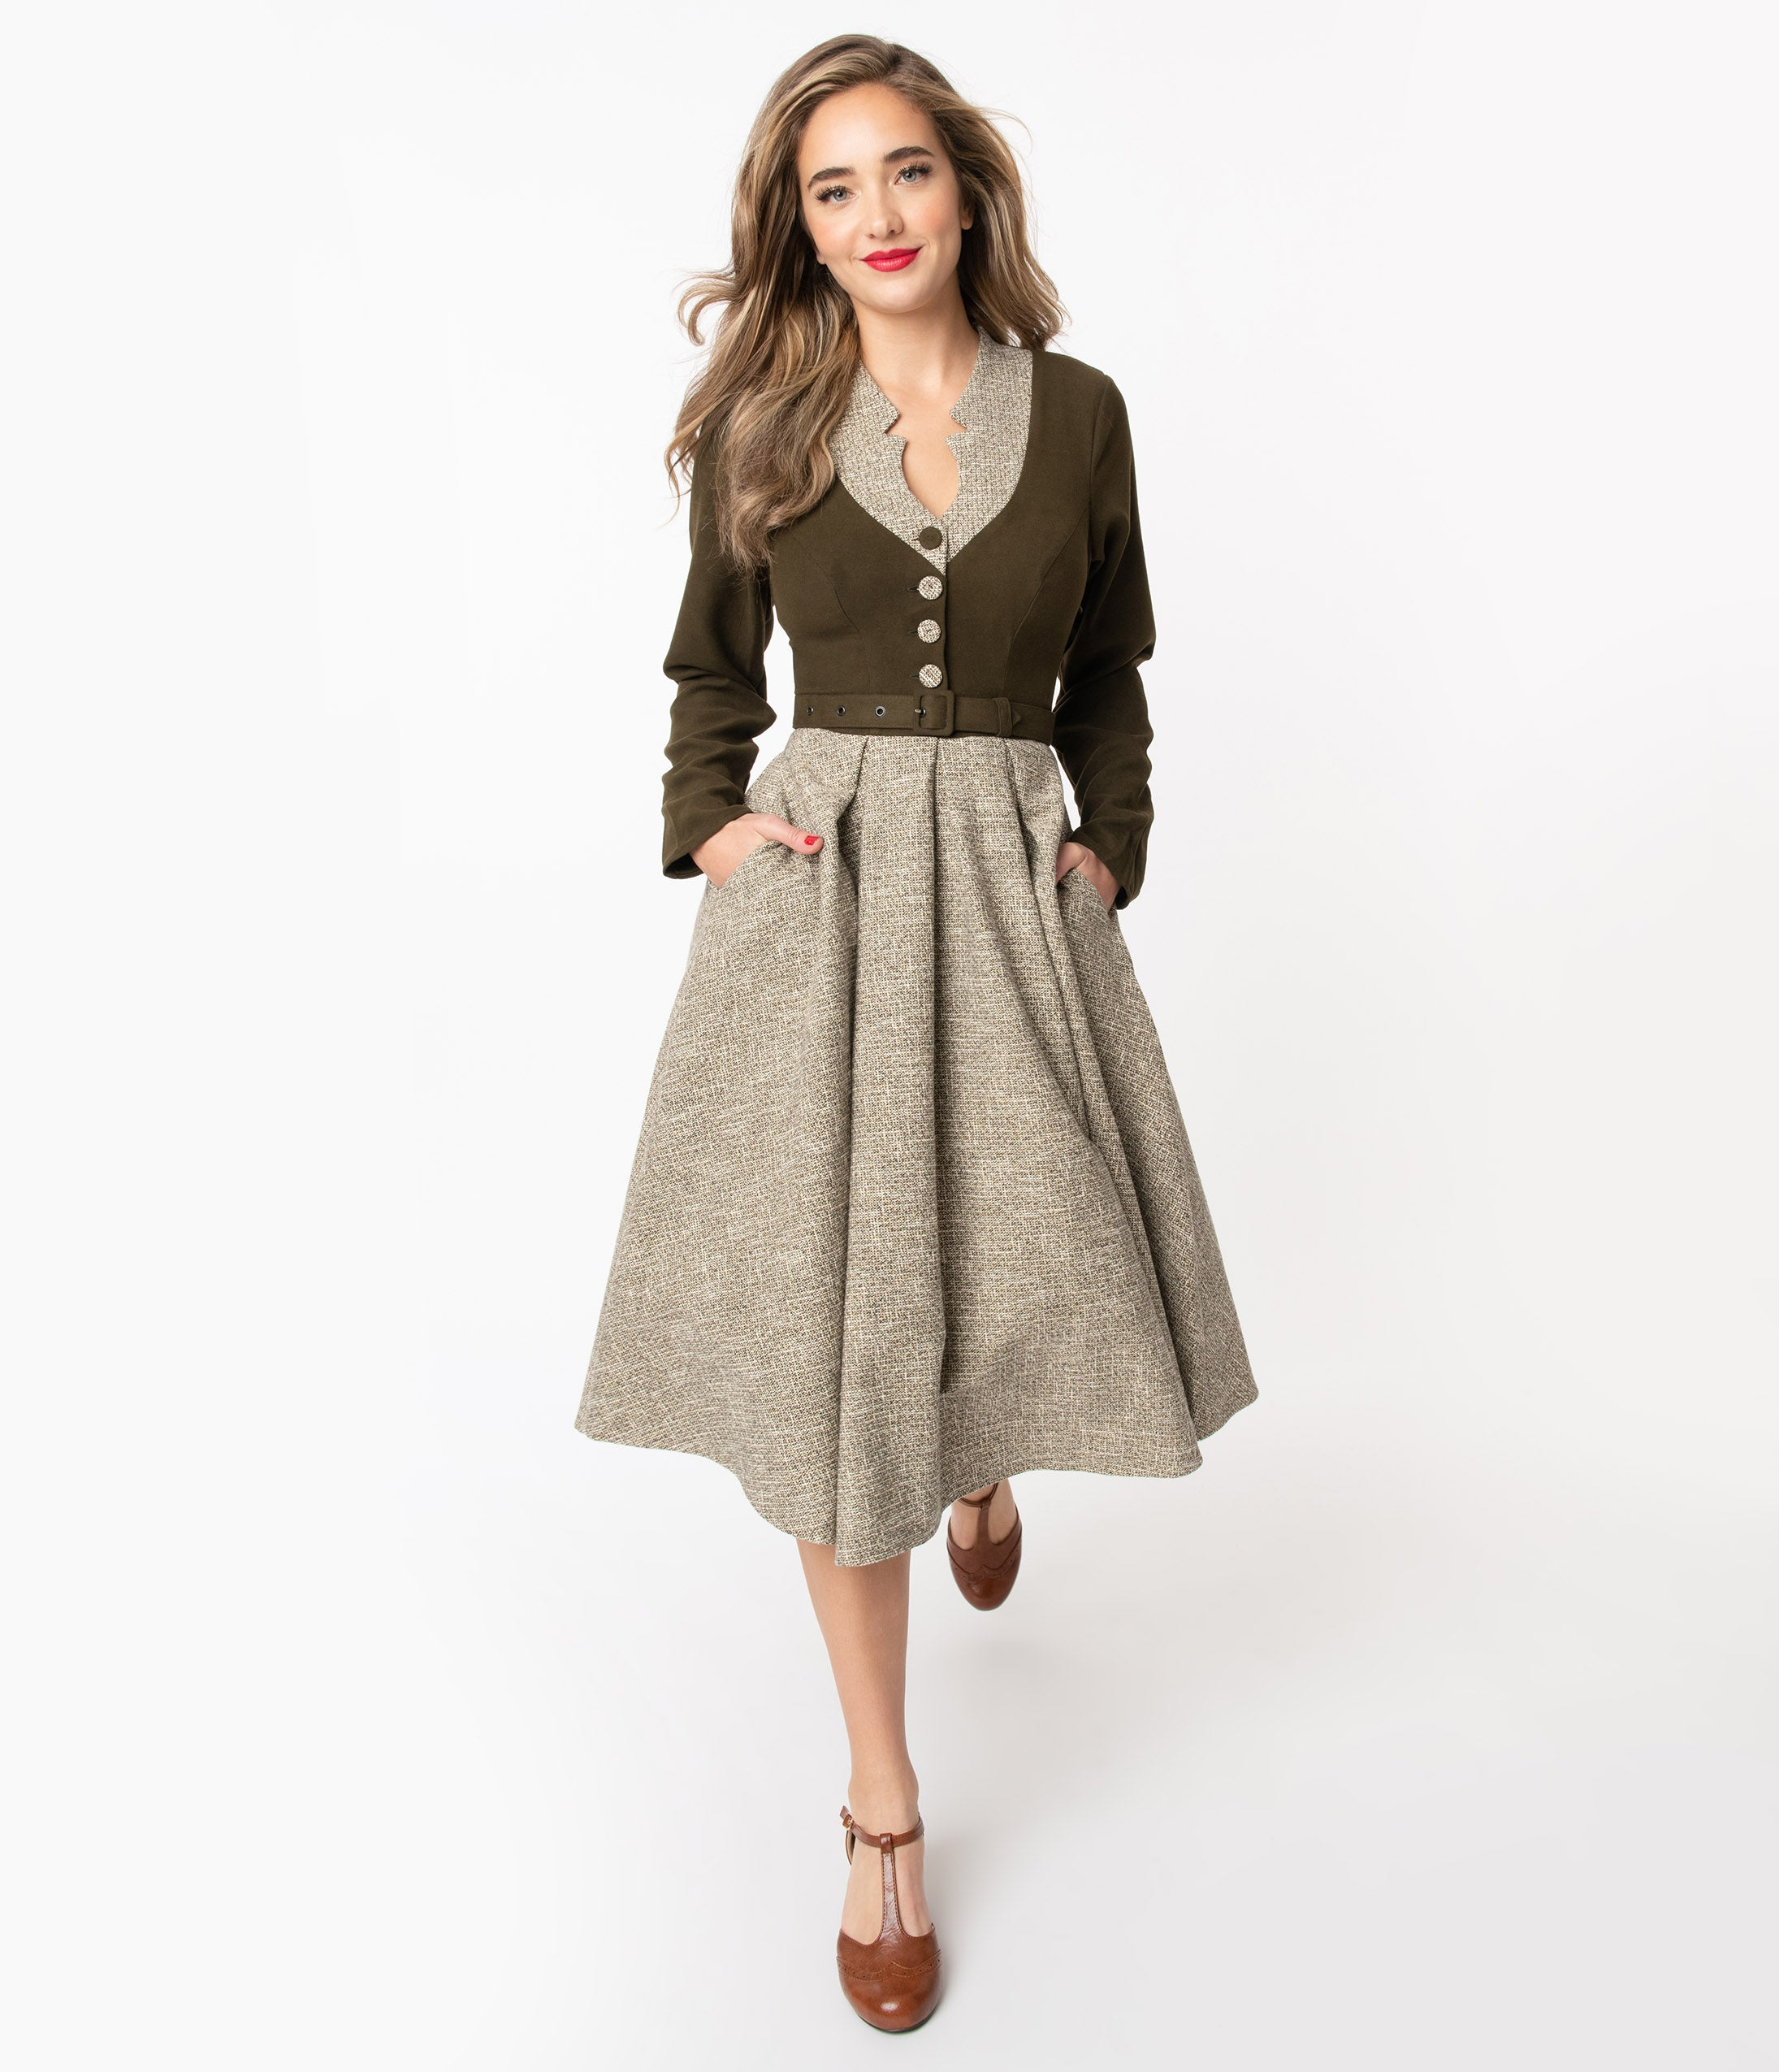 1950s Inspired Fashion: Recreate the Look Miss Candyfloss 1950S Forest Green  Sand Tamrika Swing Dress $168.00 AT vintagedancer.com